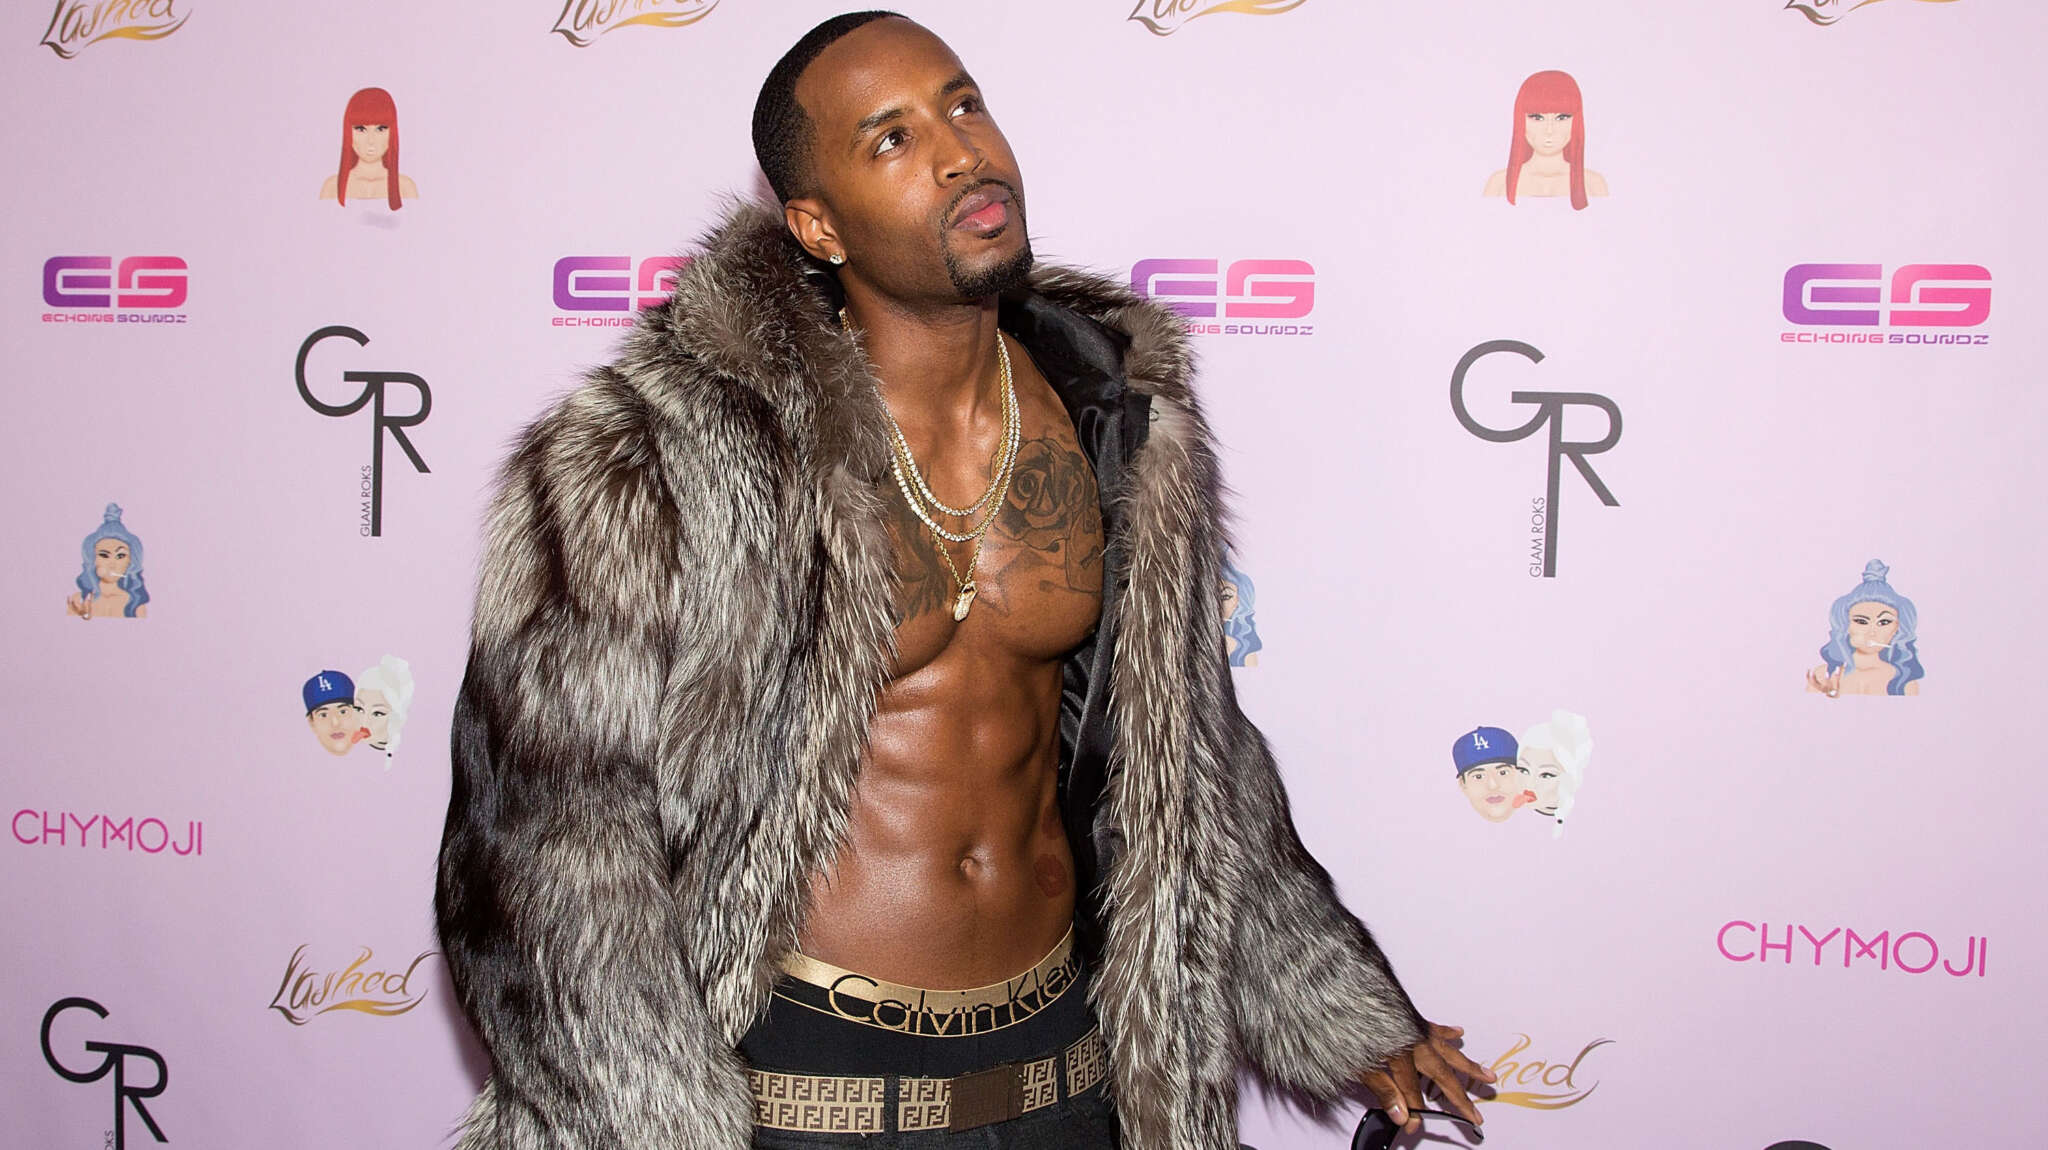 safaree-shows-of-his-body-goal-and-tells-fans-he-has-four-months-to-accomplish-the-task